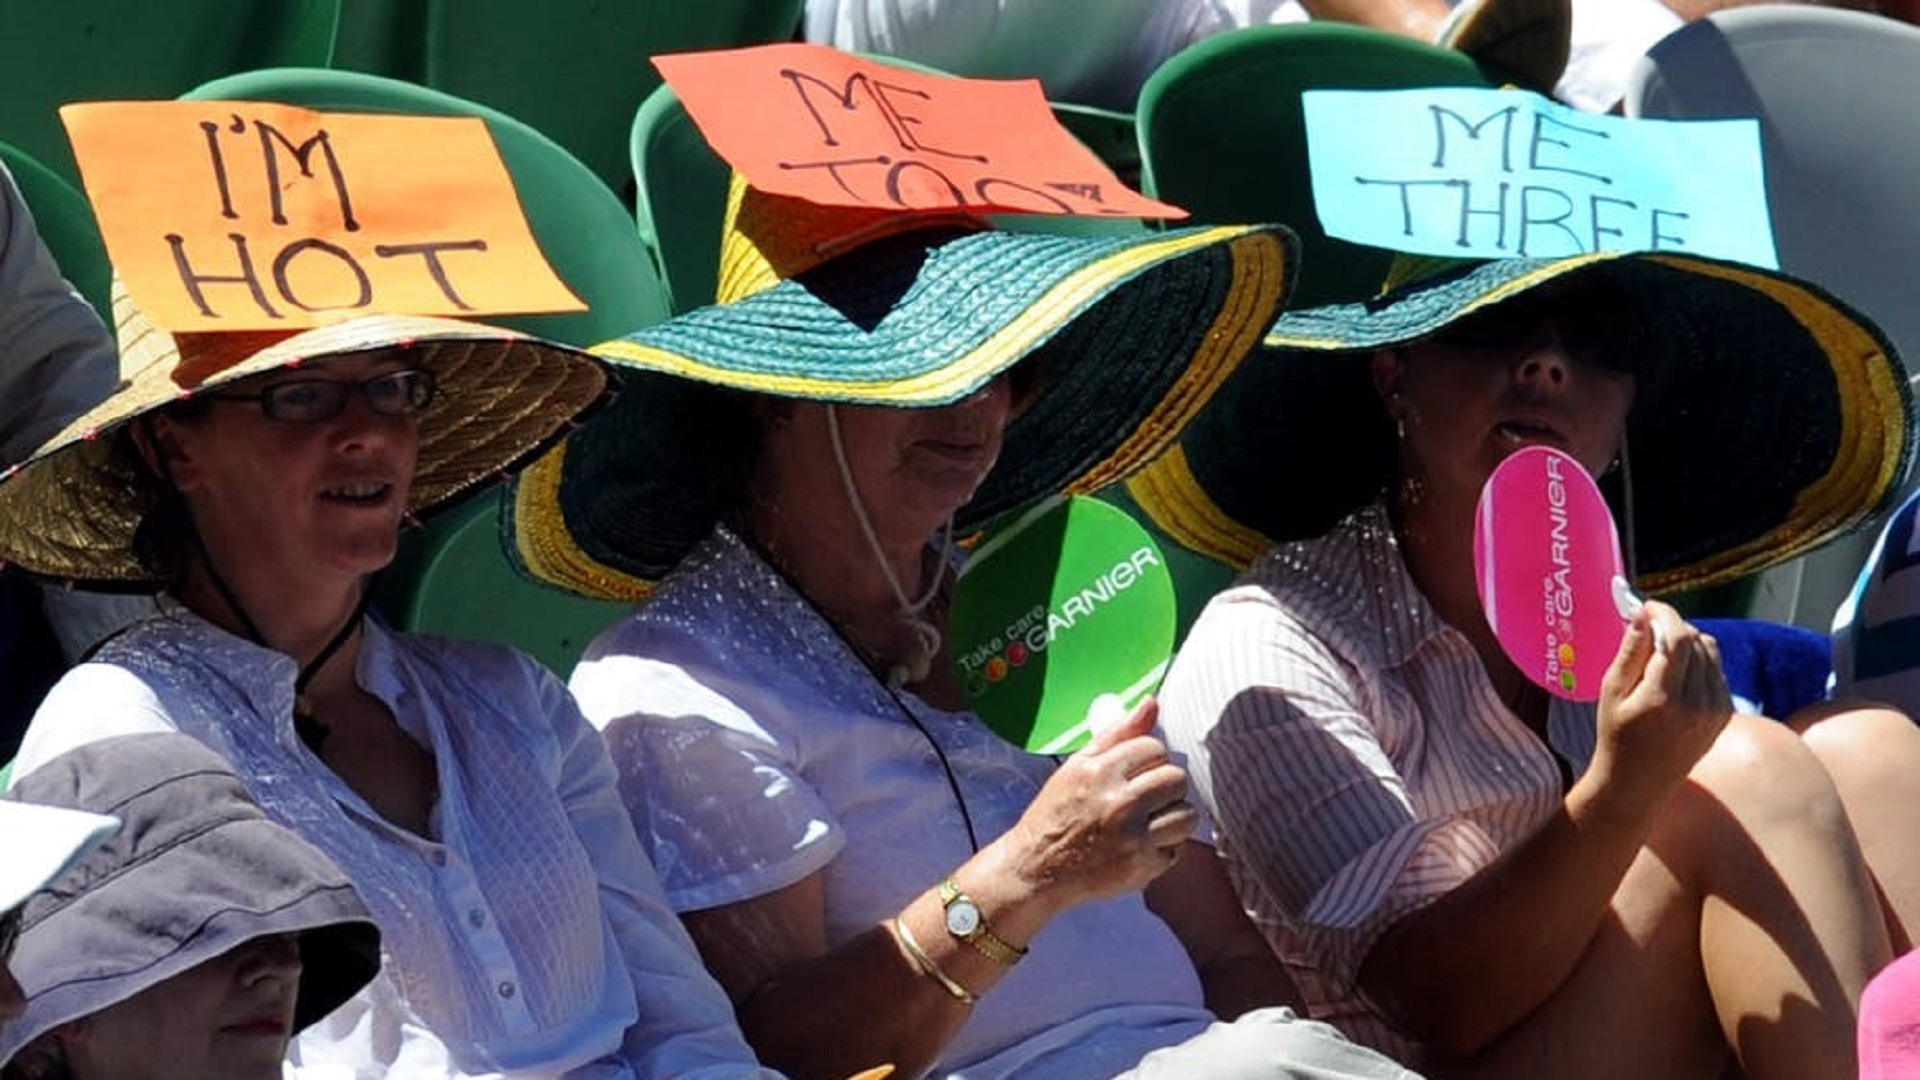 hot spectators wearing hats at tennis climate change global warming